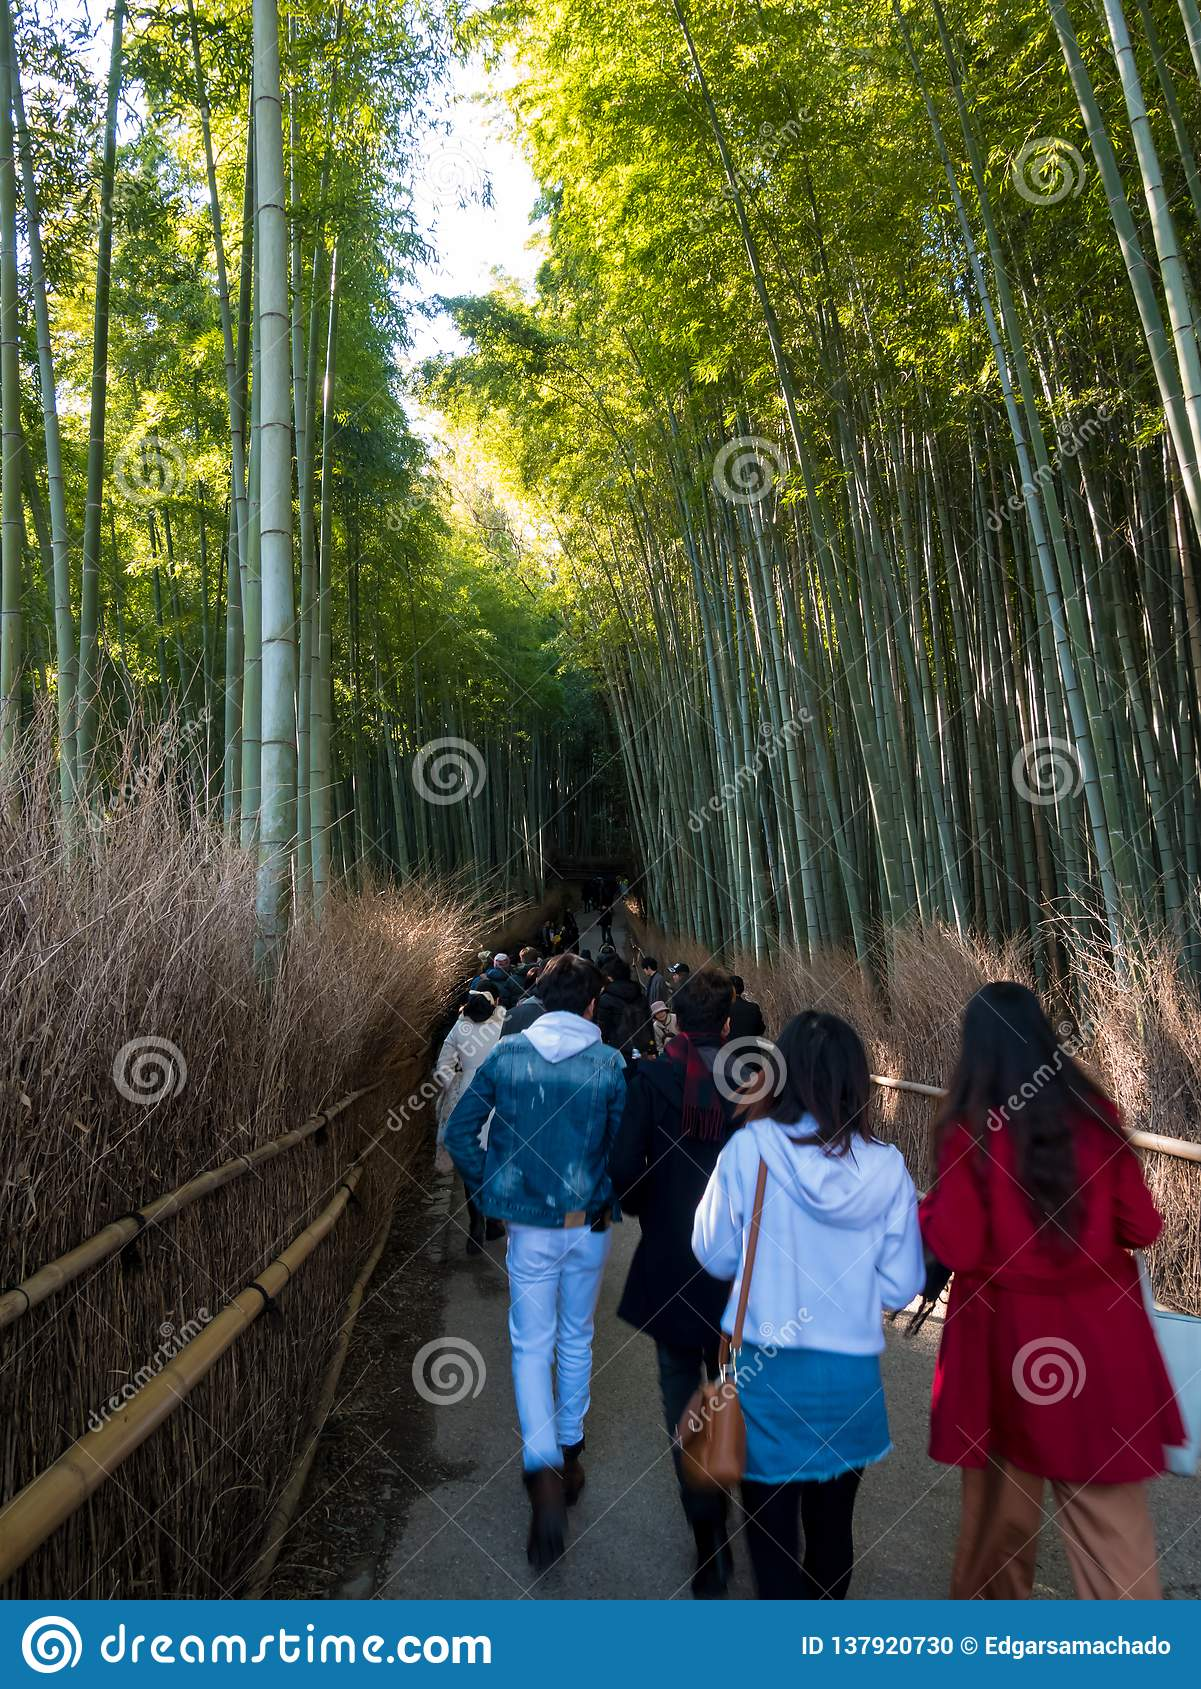 Tourist walking in Bamboo Forest